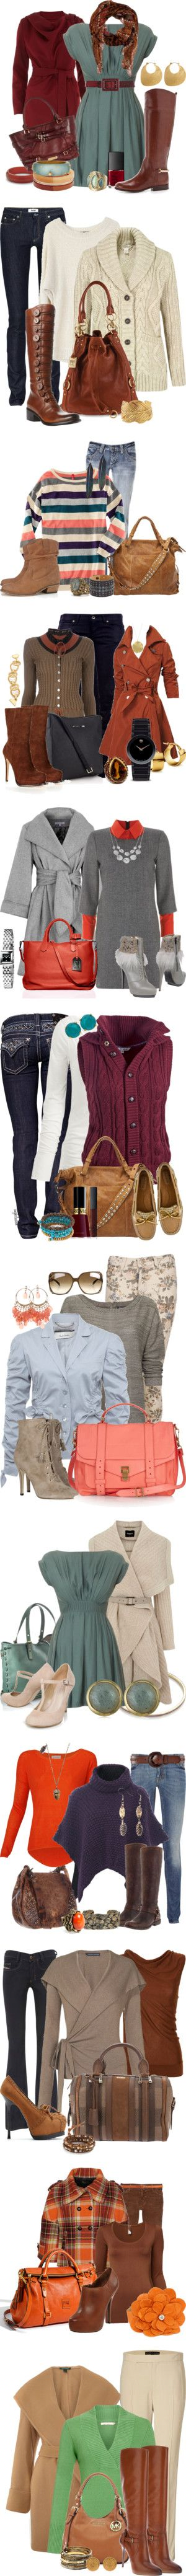 great outfit ideas.